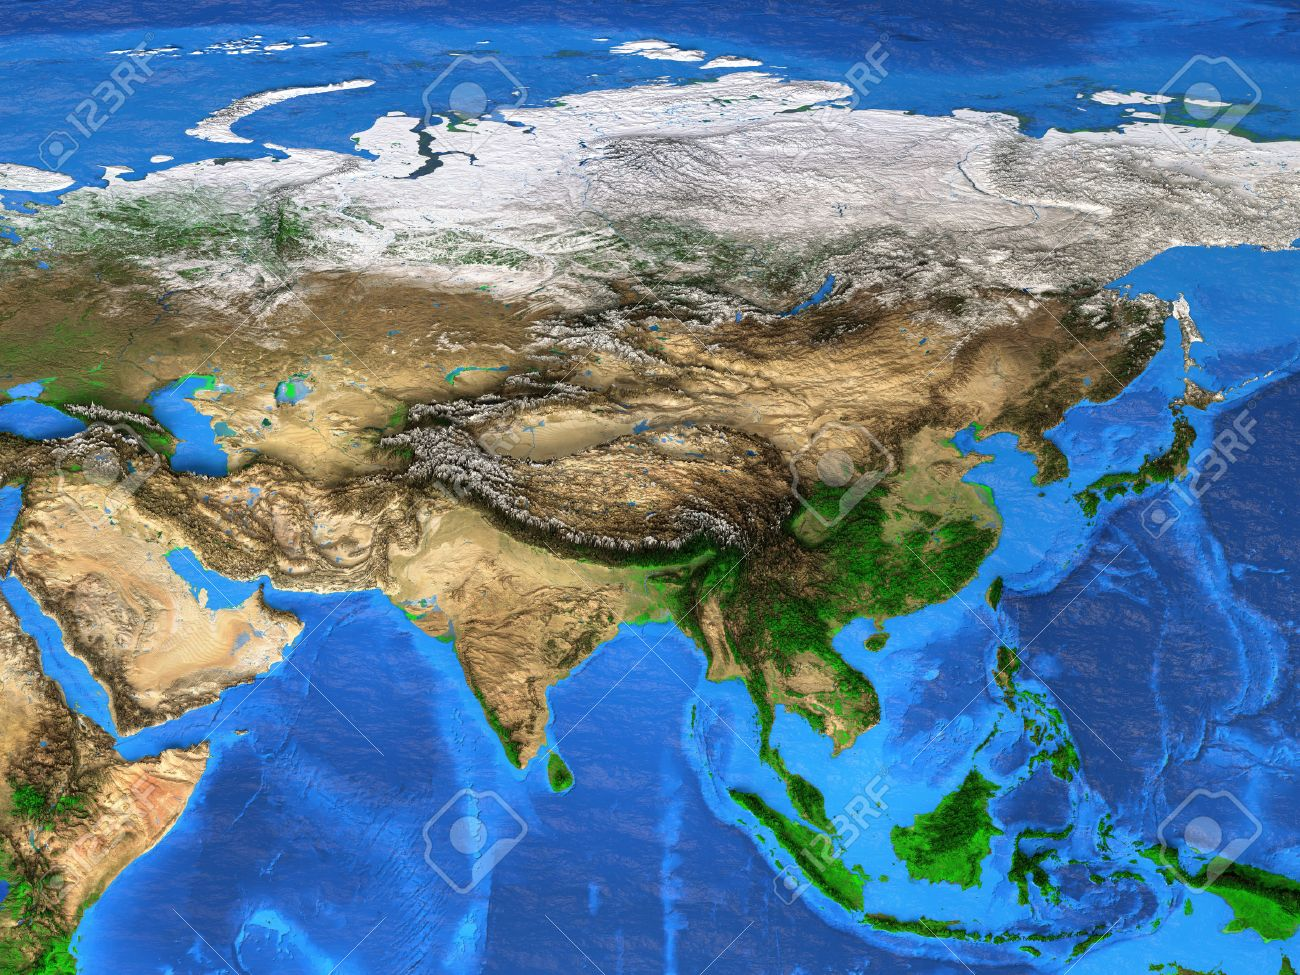 Detailed satellite view of the Earth and its landforms. Asia.. on asia digital map, asia shape, asia culture, asia on map, asia india, asia traditions, asia pacific map, asia elevation, asia finance, asia spice map, russia map, asia history, asia land, asia indonesia, sub-saharan africa cities map, asia earth view, asia map with landforms, asia russia, asia tv map, asia china,